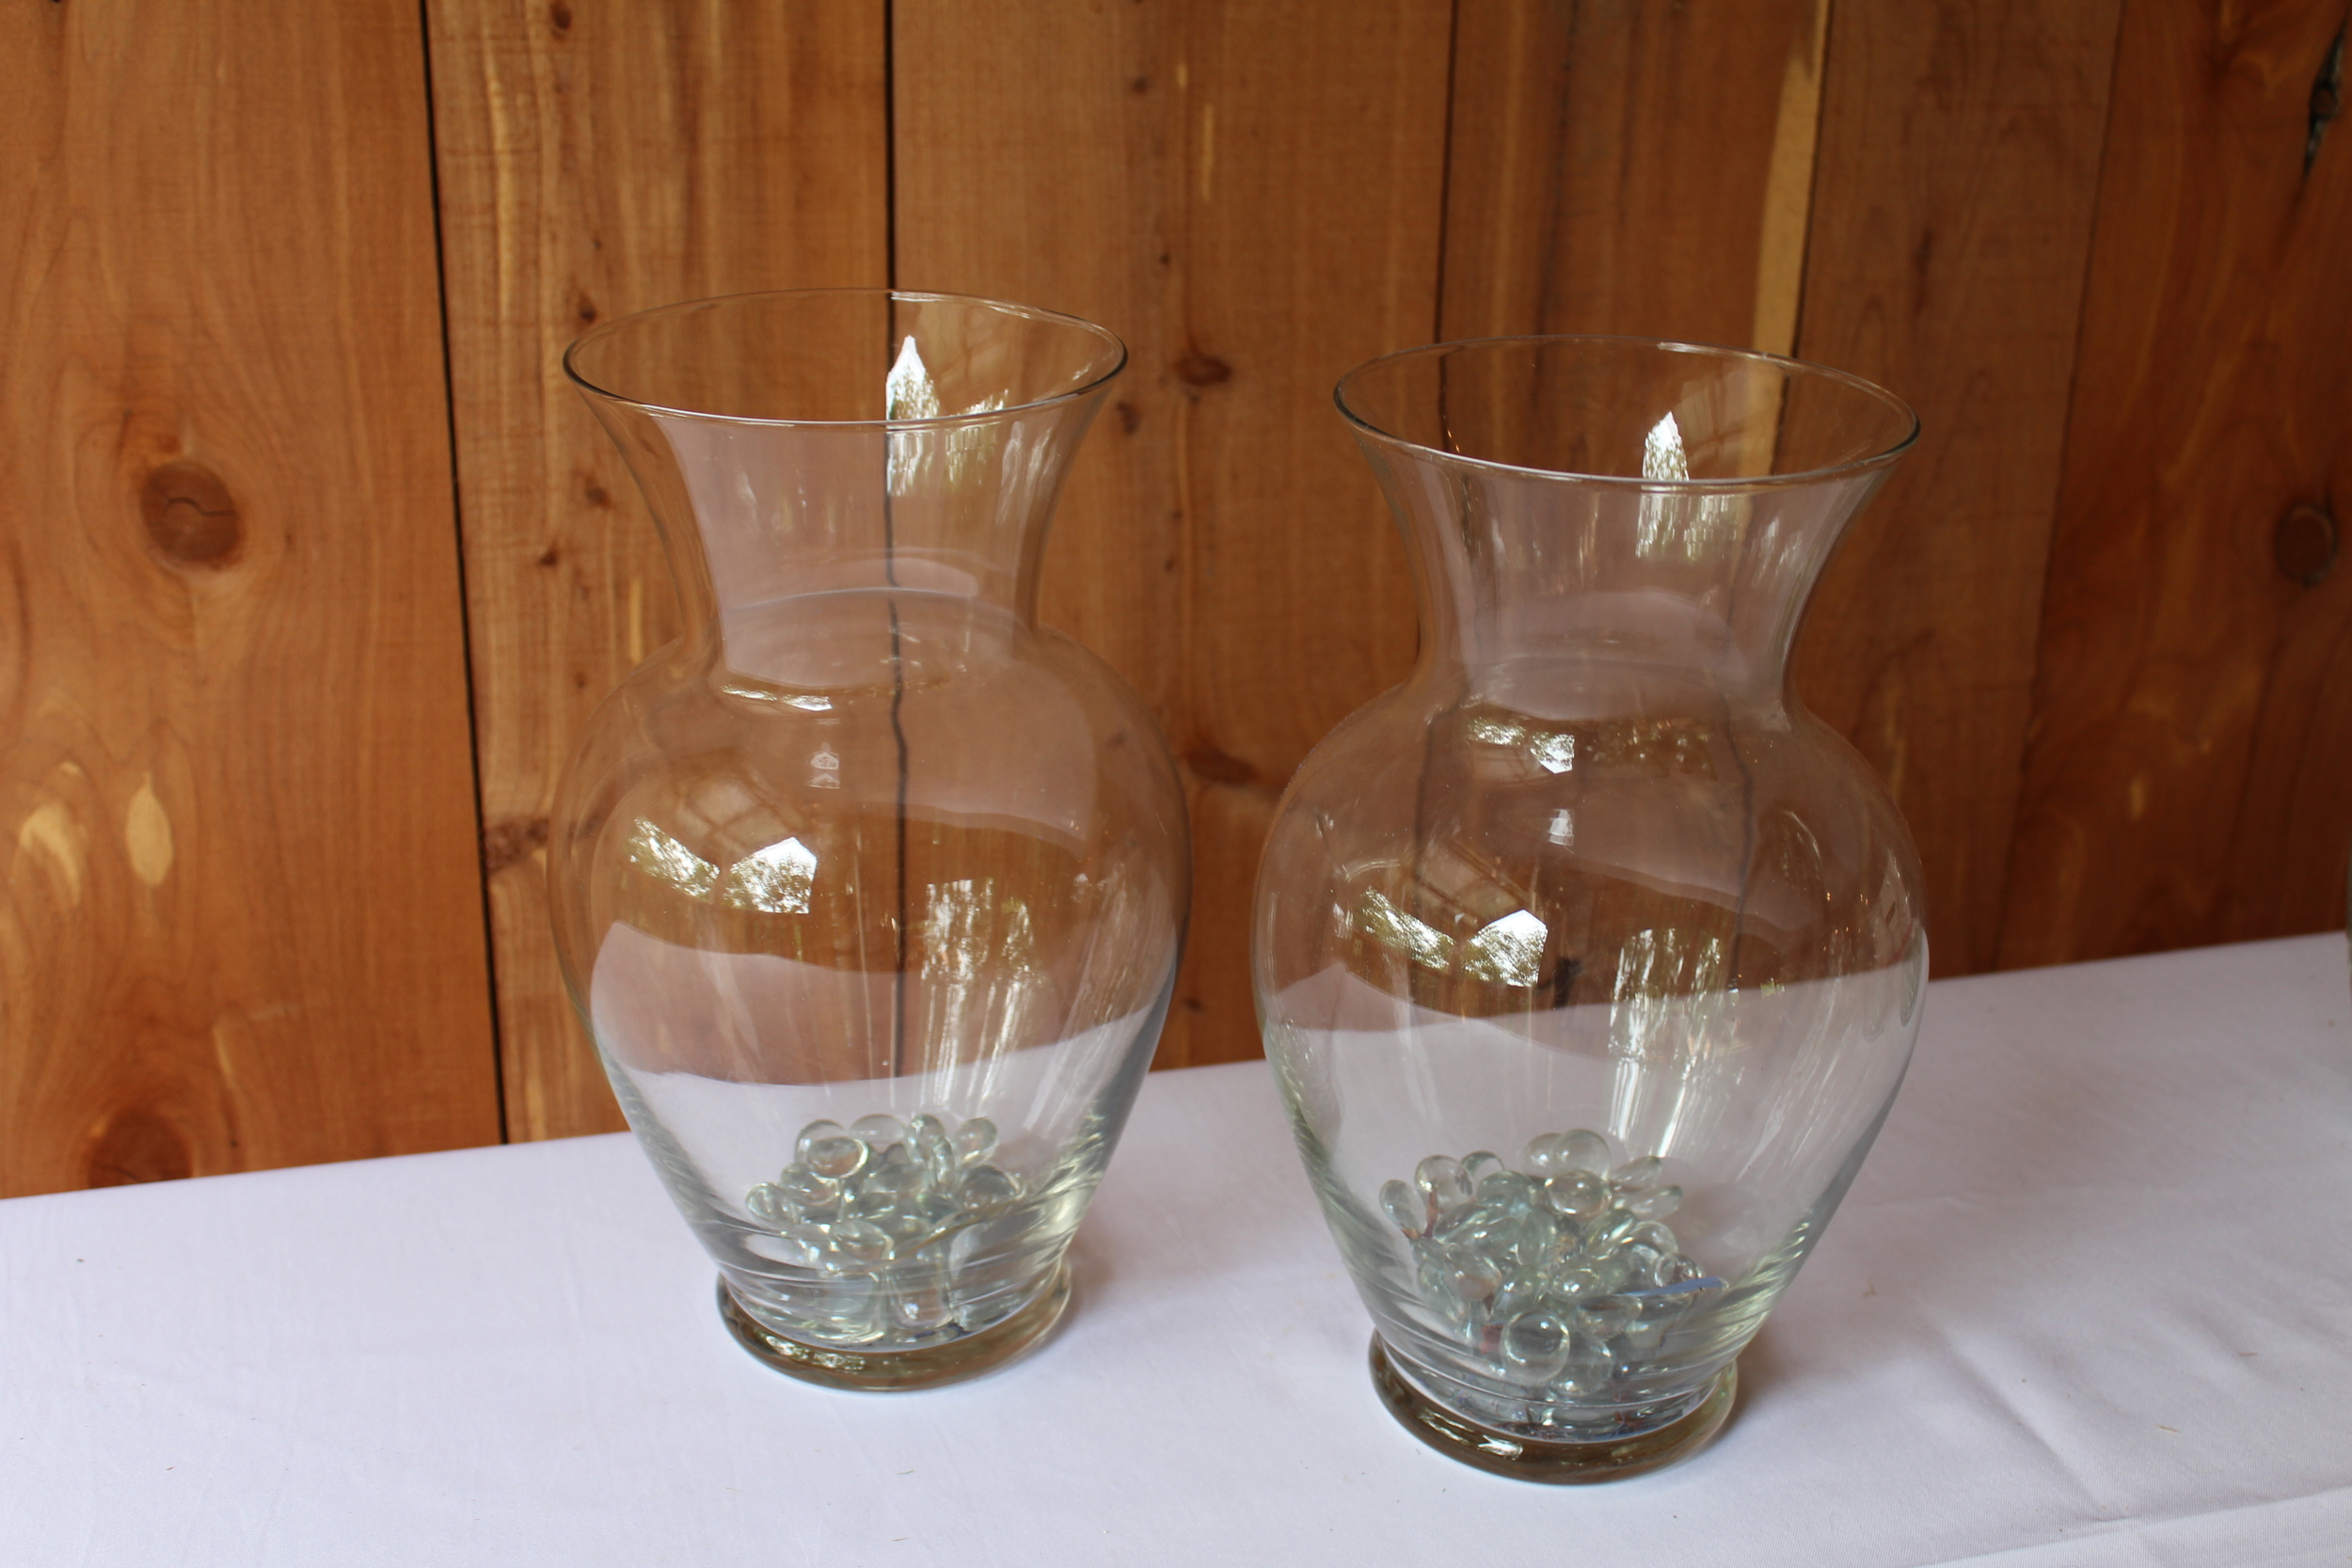 #59 - Tall Glass Vases